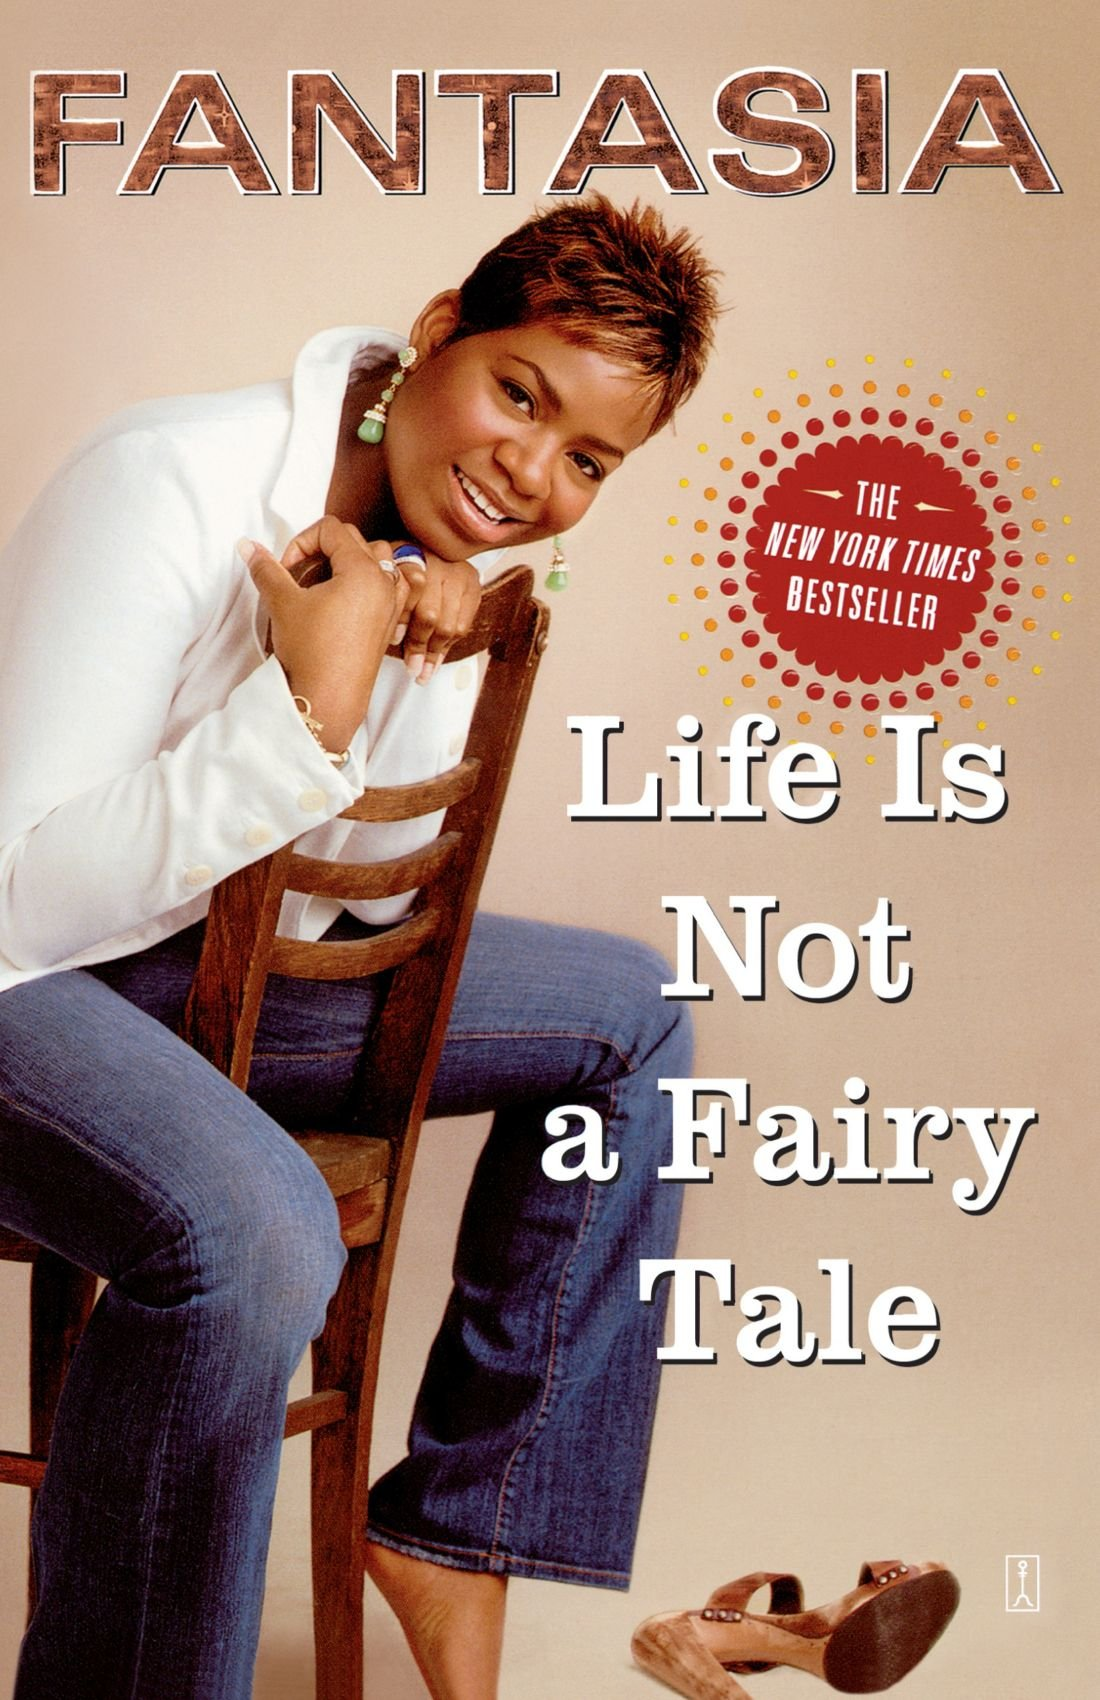 fantasia life is not a fairytale full movie free